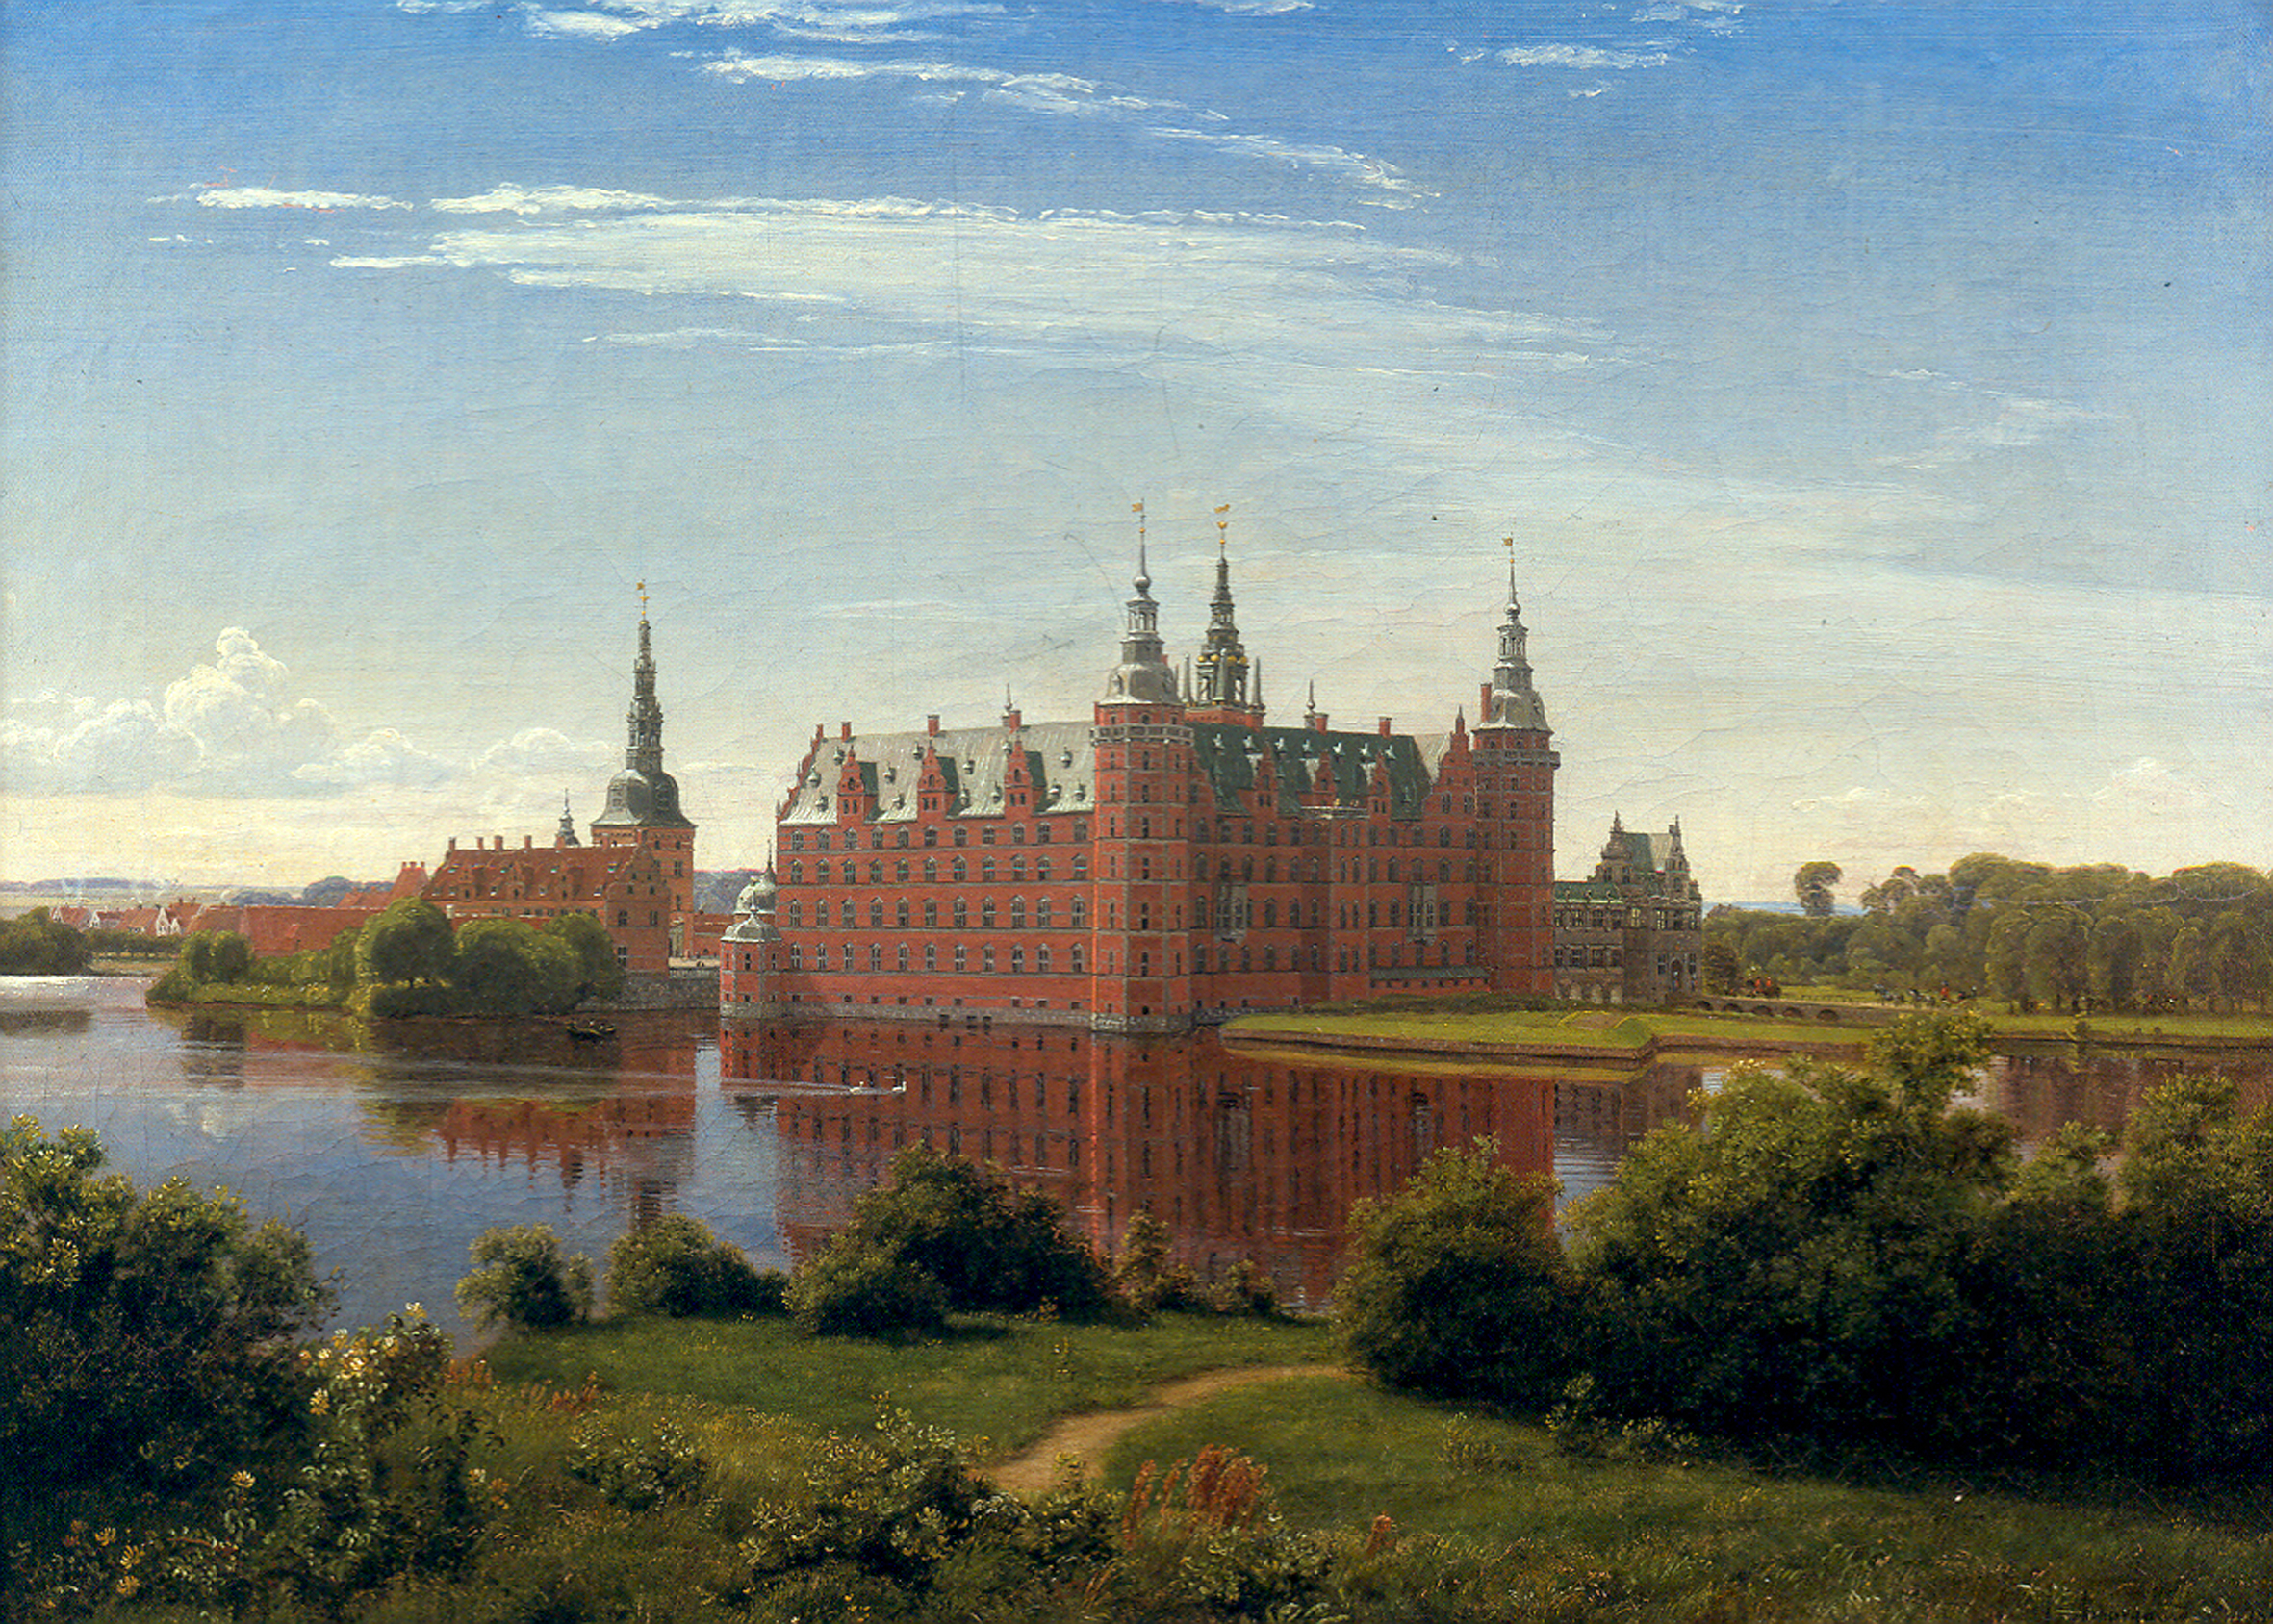 The museum of national history at frederiksborg castle copenhagen - File Frederiksborg 1841 By P C Skovgaard Jpg